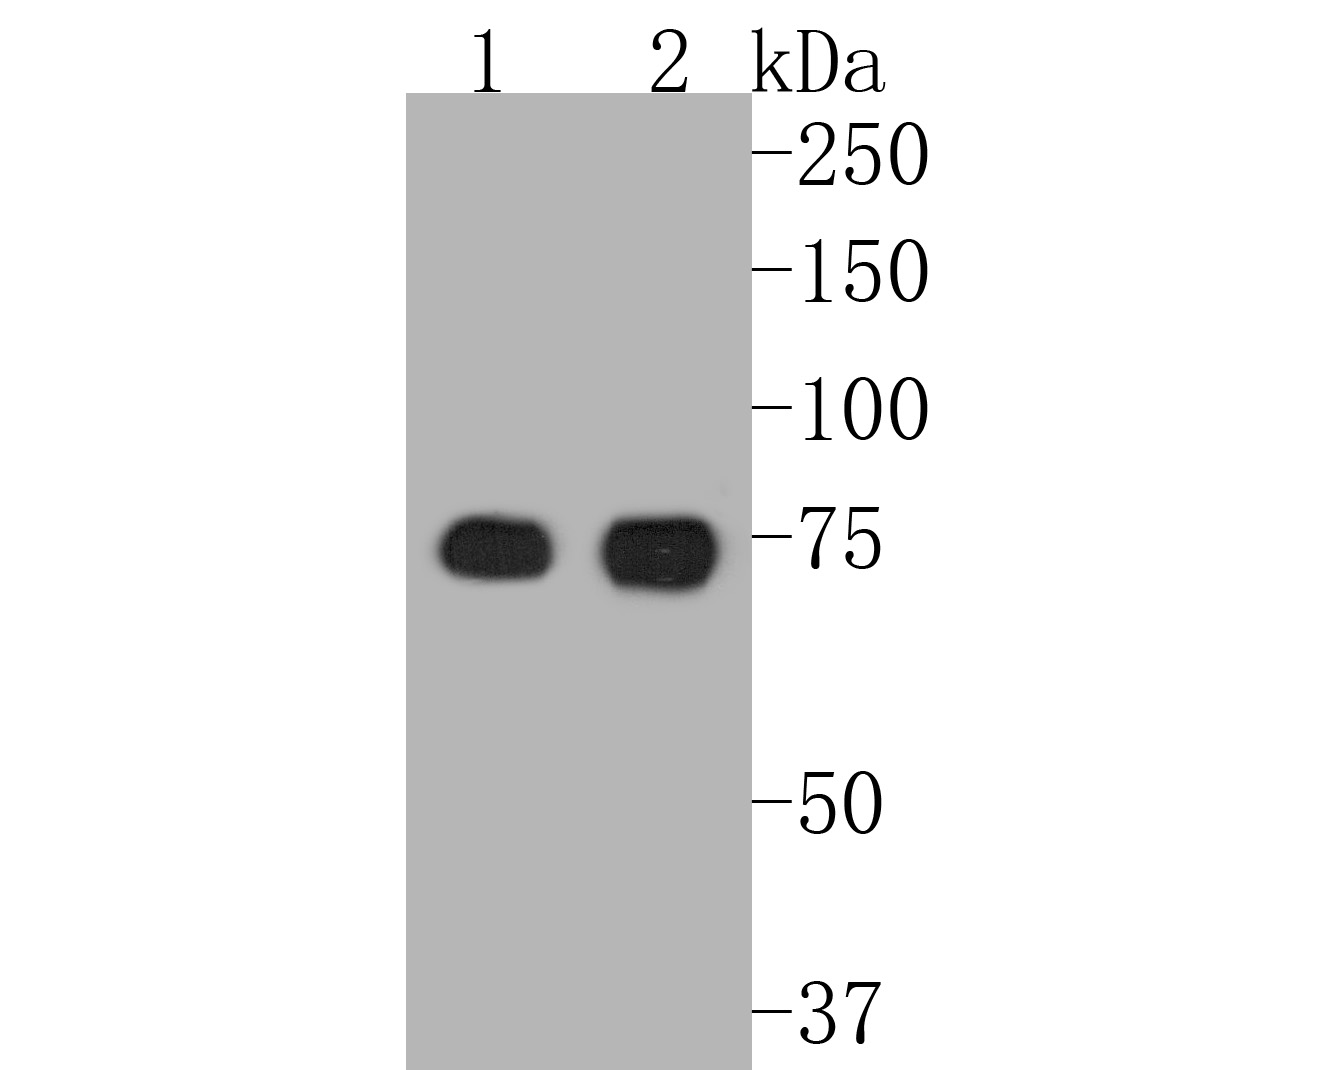 Western blot analysis of Scavenging Receptor SR-BI on different lysates. Proteins were transferred to a PVDF membrane and blocked with 5% BSA in PBS for 1 hour at room temperature. The primary antibody (ET1602-32, 1/500) was used in 5% BSA at room temperature for 2 hours. Goat Anti-Rabbit IgG - HRP Secondary Antibody (HA1001) at 1:5,000 dilution was used for 1 hour at room temperature.<br /> Positive control: <br /> Lane 1: mouse liver tissue lysate<br /> Lane 2: human liver tissue lysate